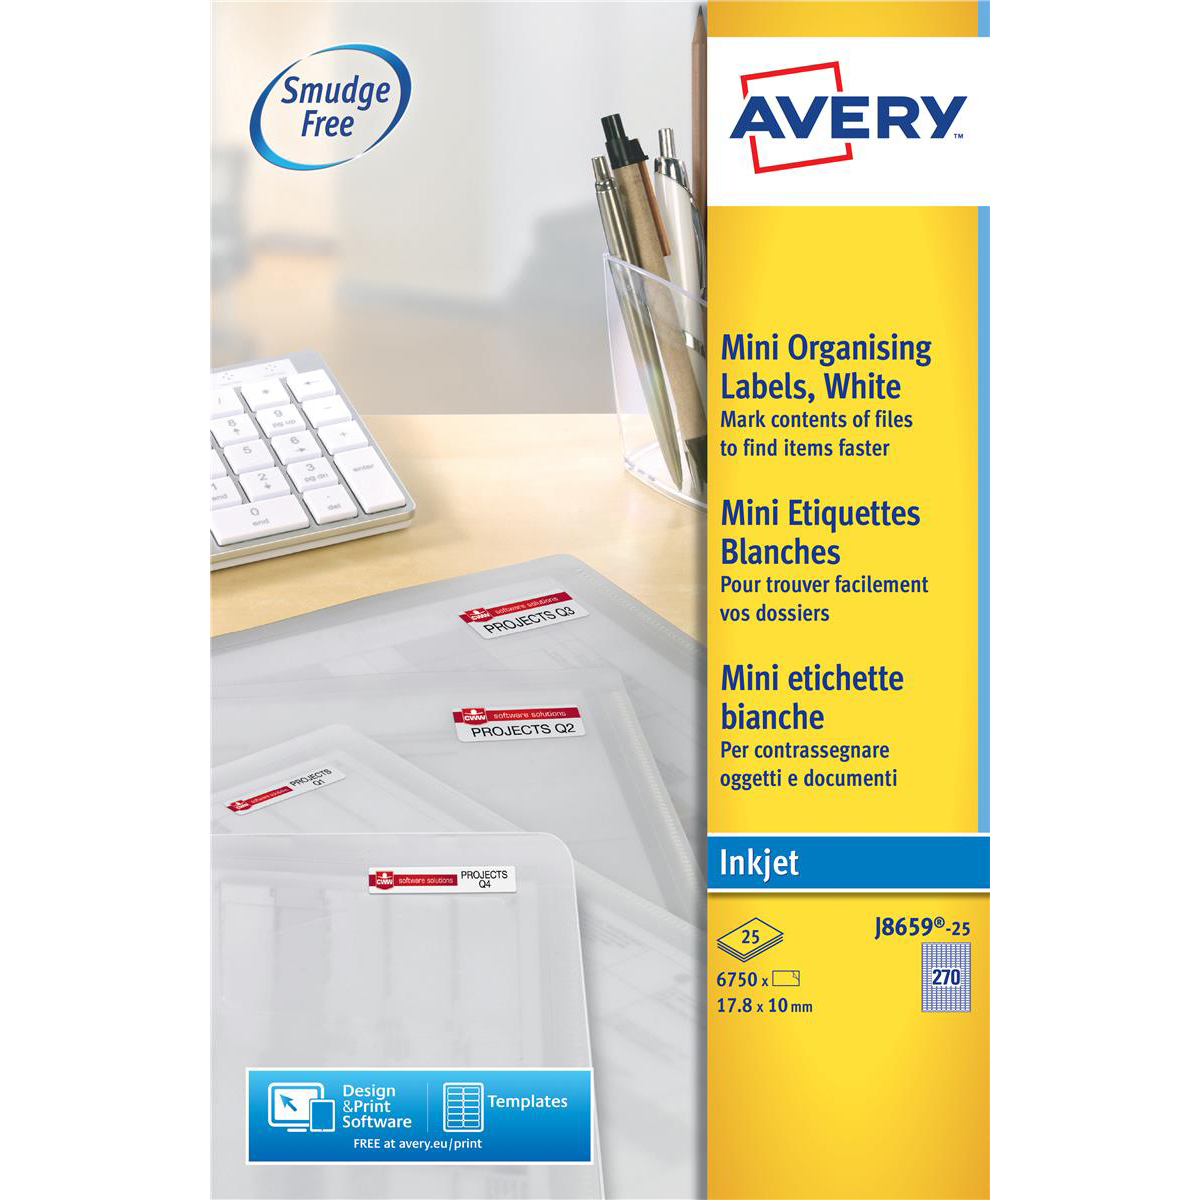 Avery Mini Labels Inkjet 270 per Sheet 17.8x10mm White Ref J8659REV-25 [6750 Labels]